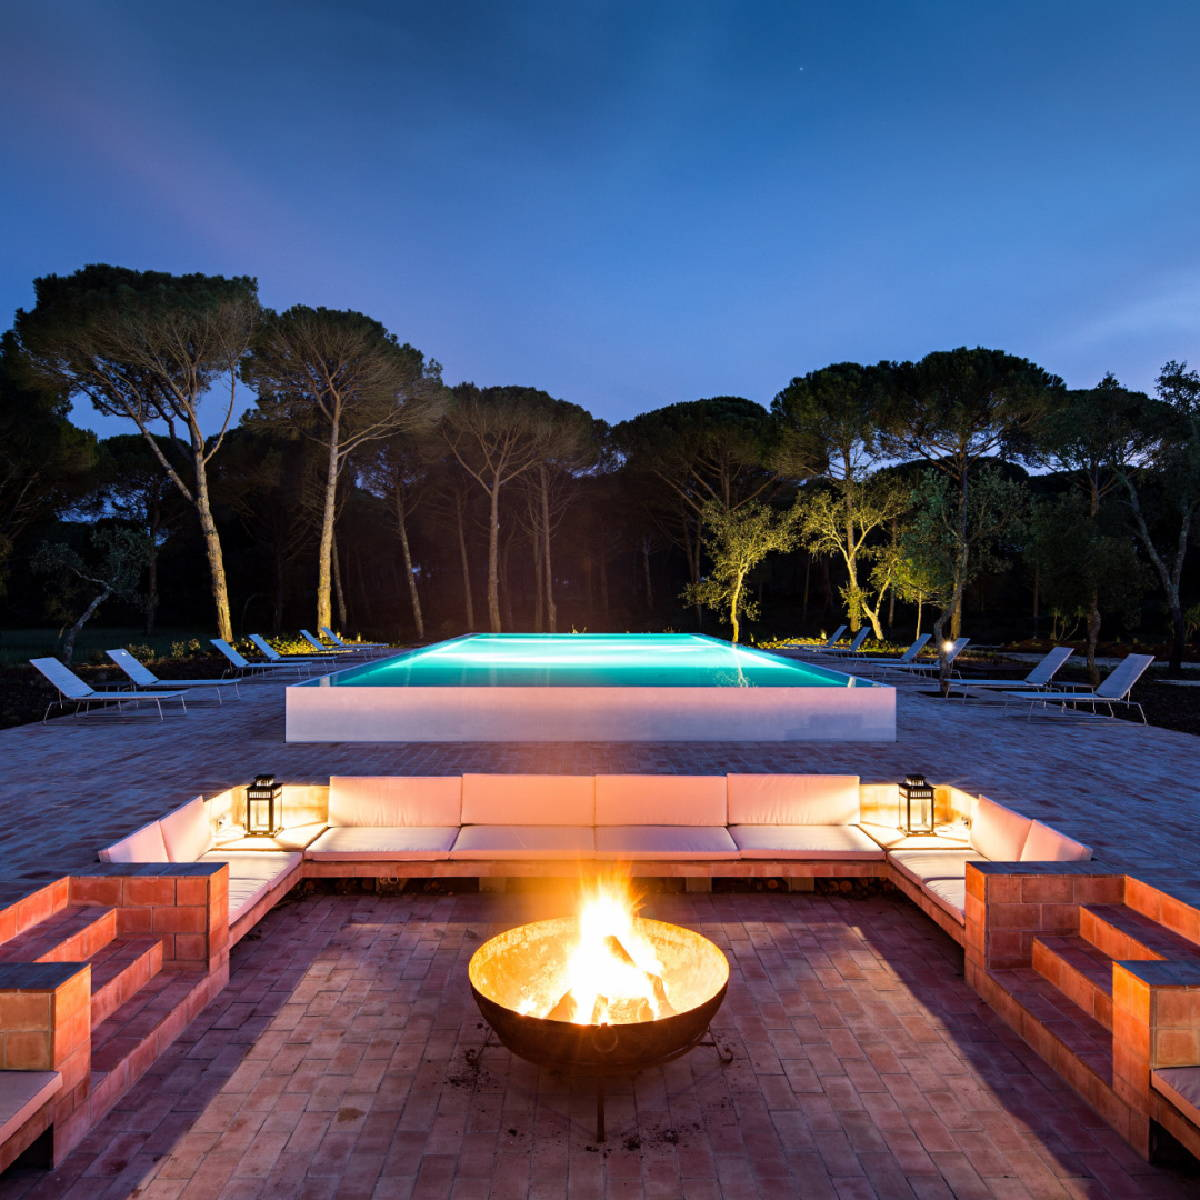 Fire pit and pool at Sublime Comporta Portugal